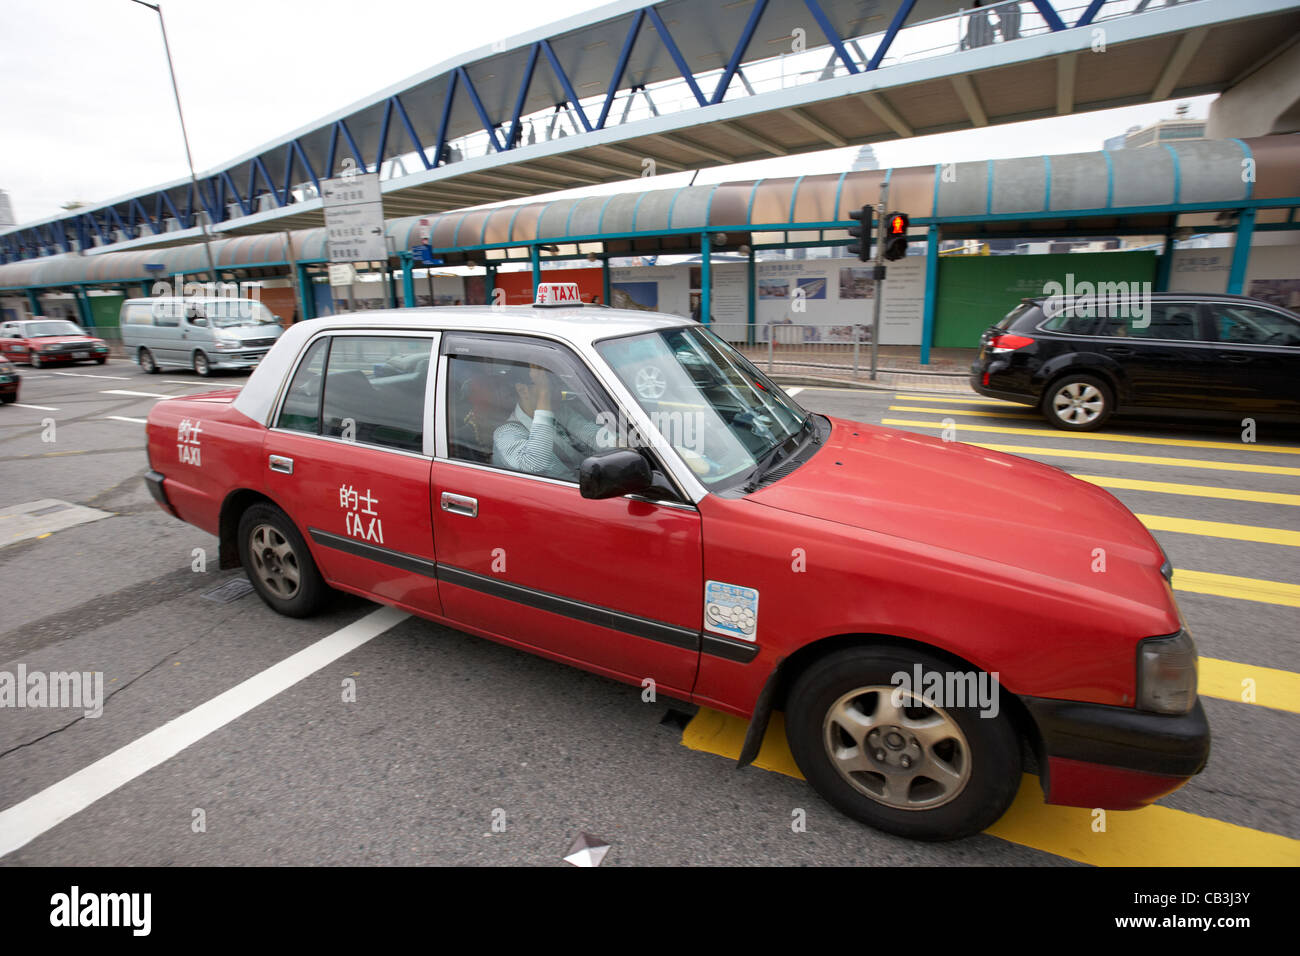 hong kong red taxi hong kong island hksar china motion blur Stock Photo